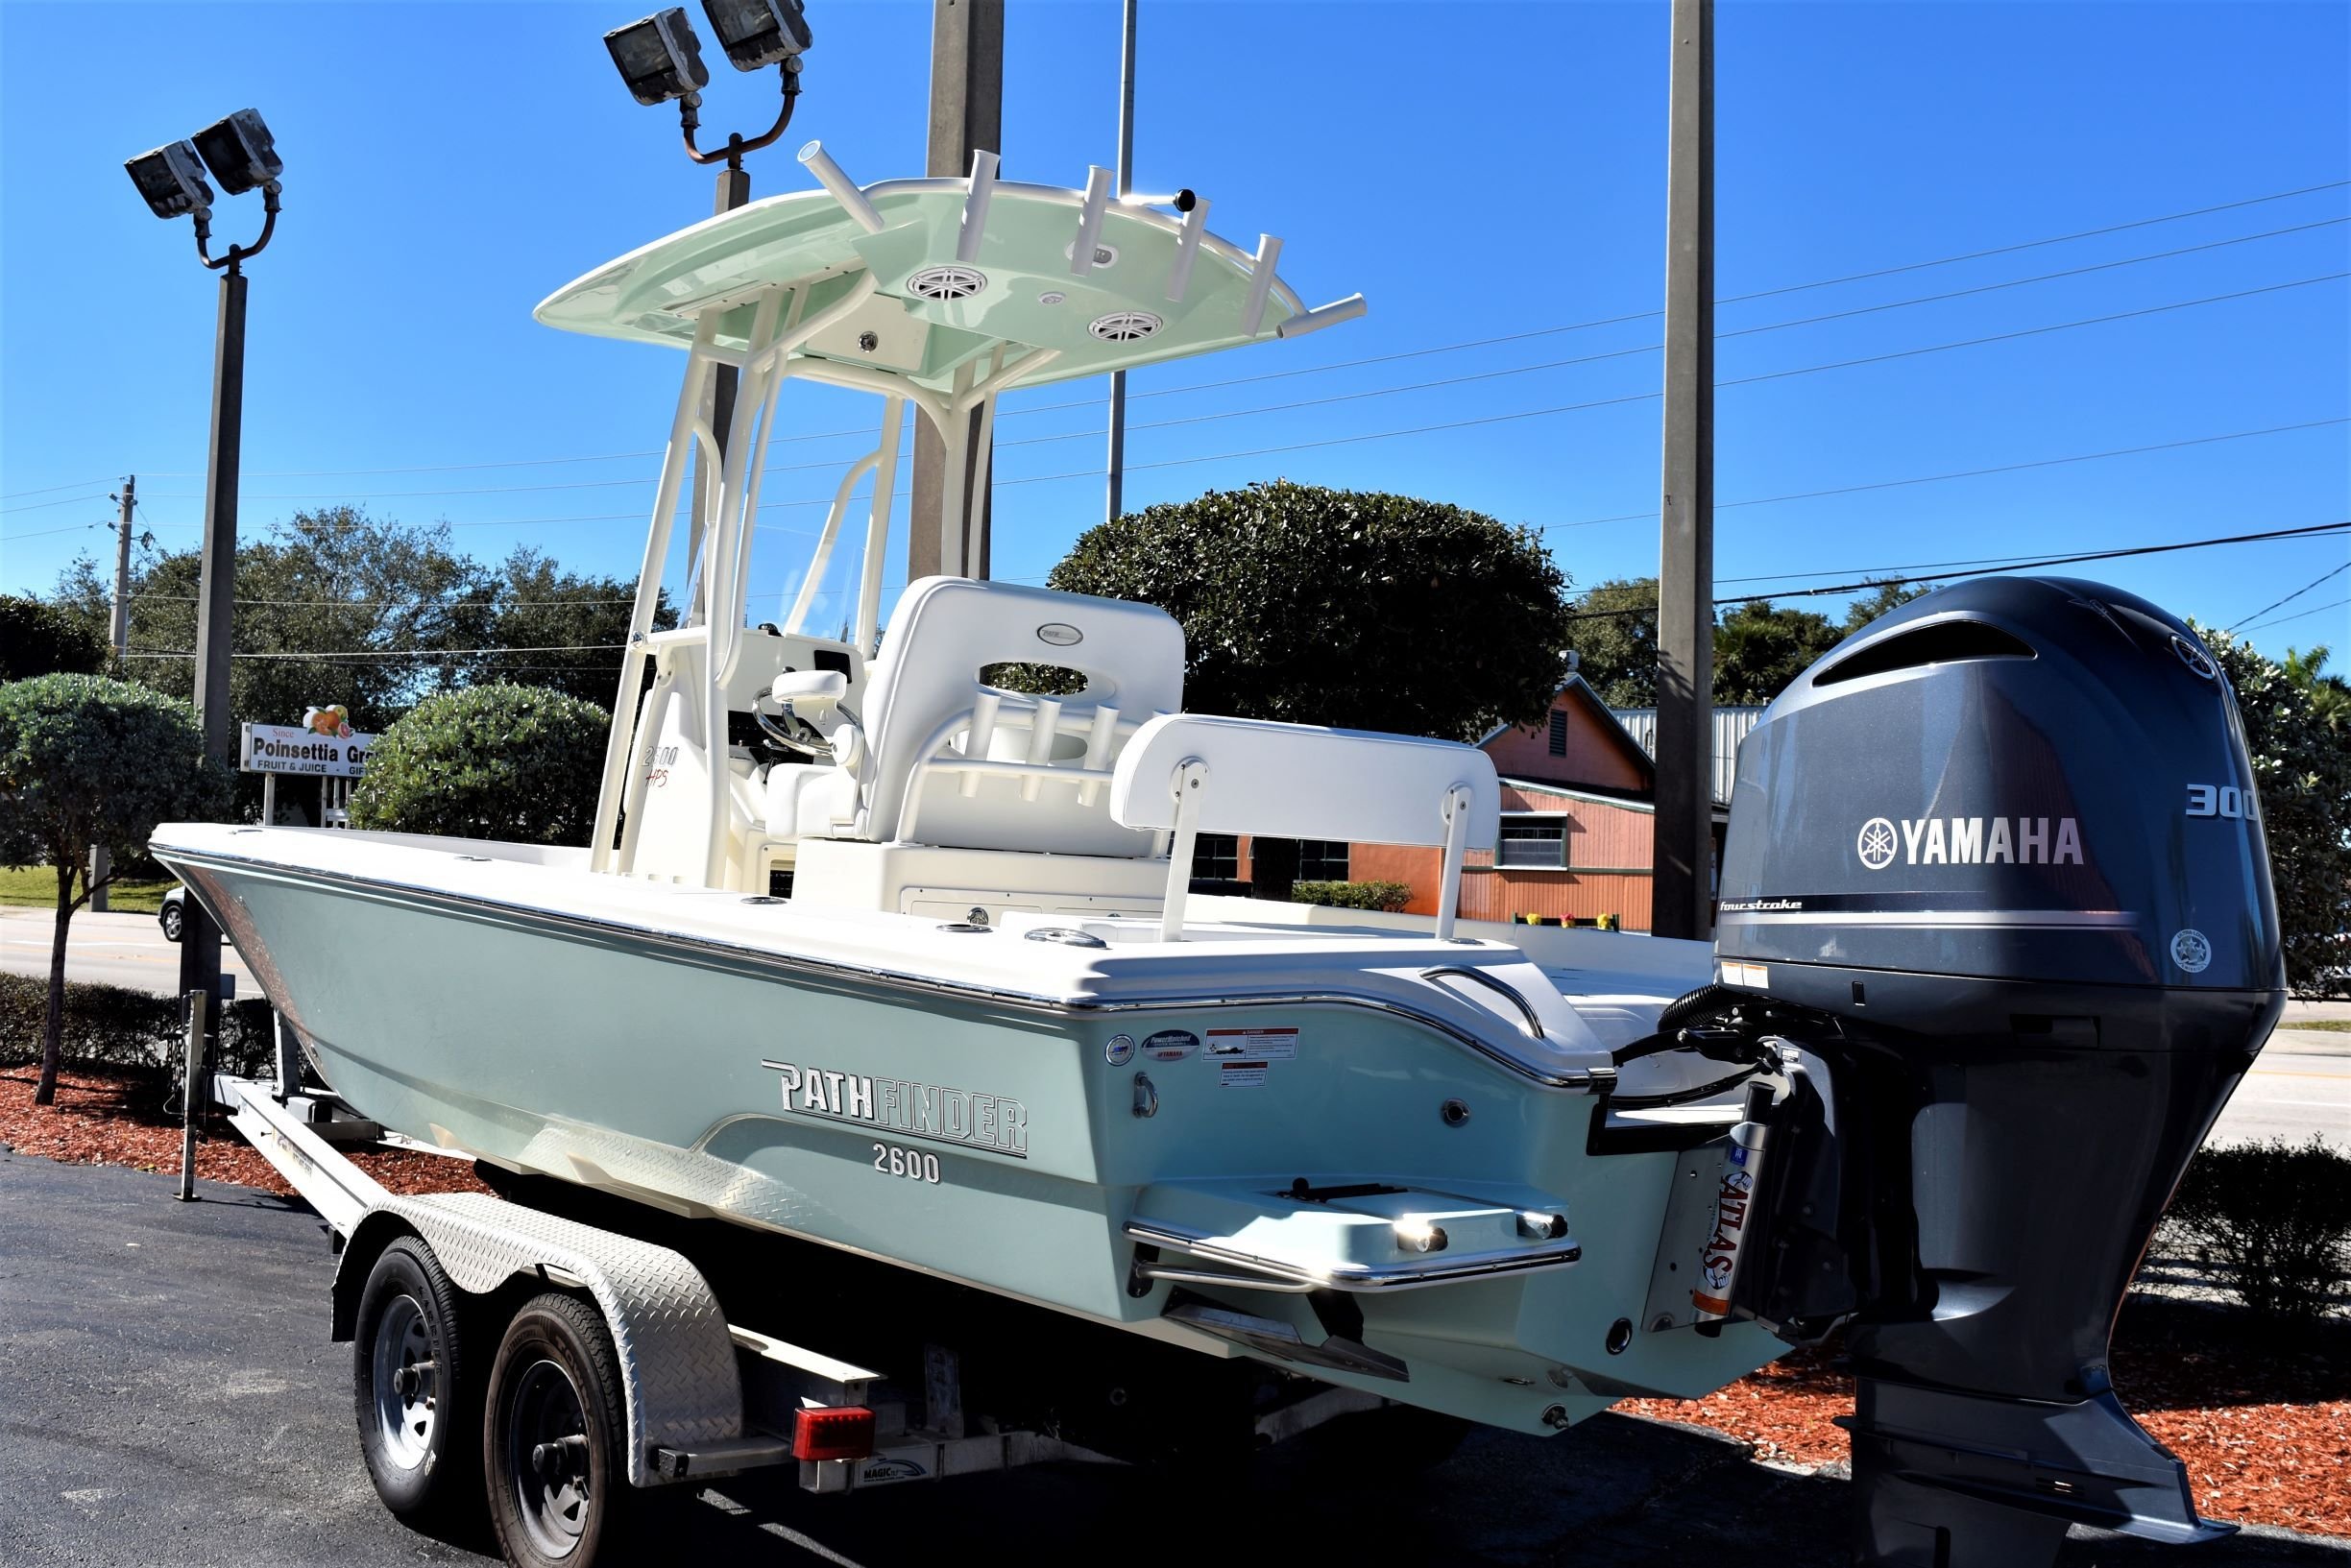 Thumbnail 3 for New 2020 Pathfinder 2600 HPS Bay Boat boat for sale in Vero Beach, FL